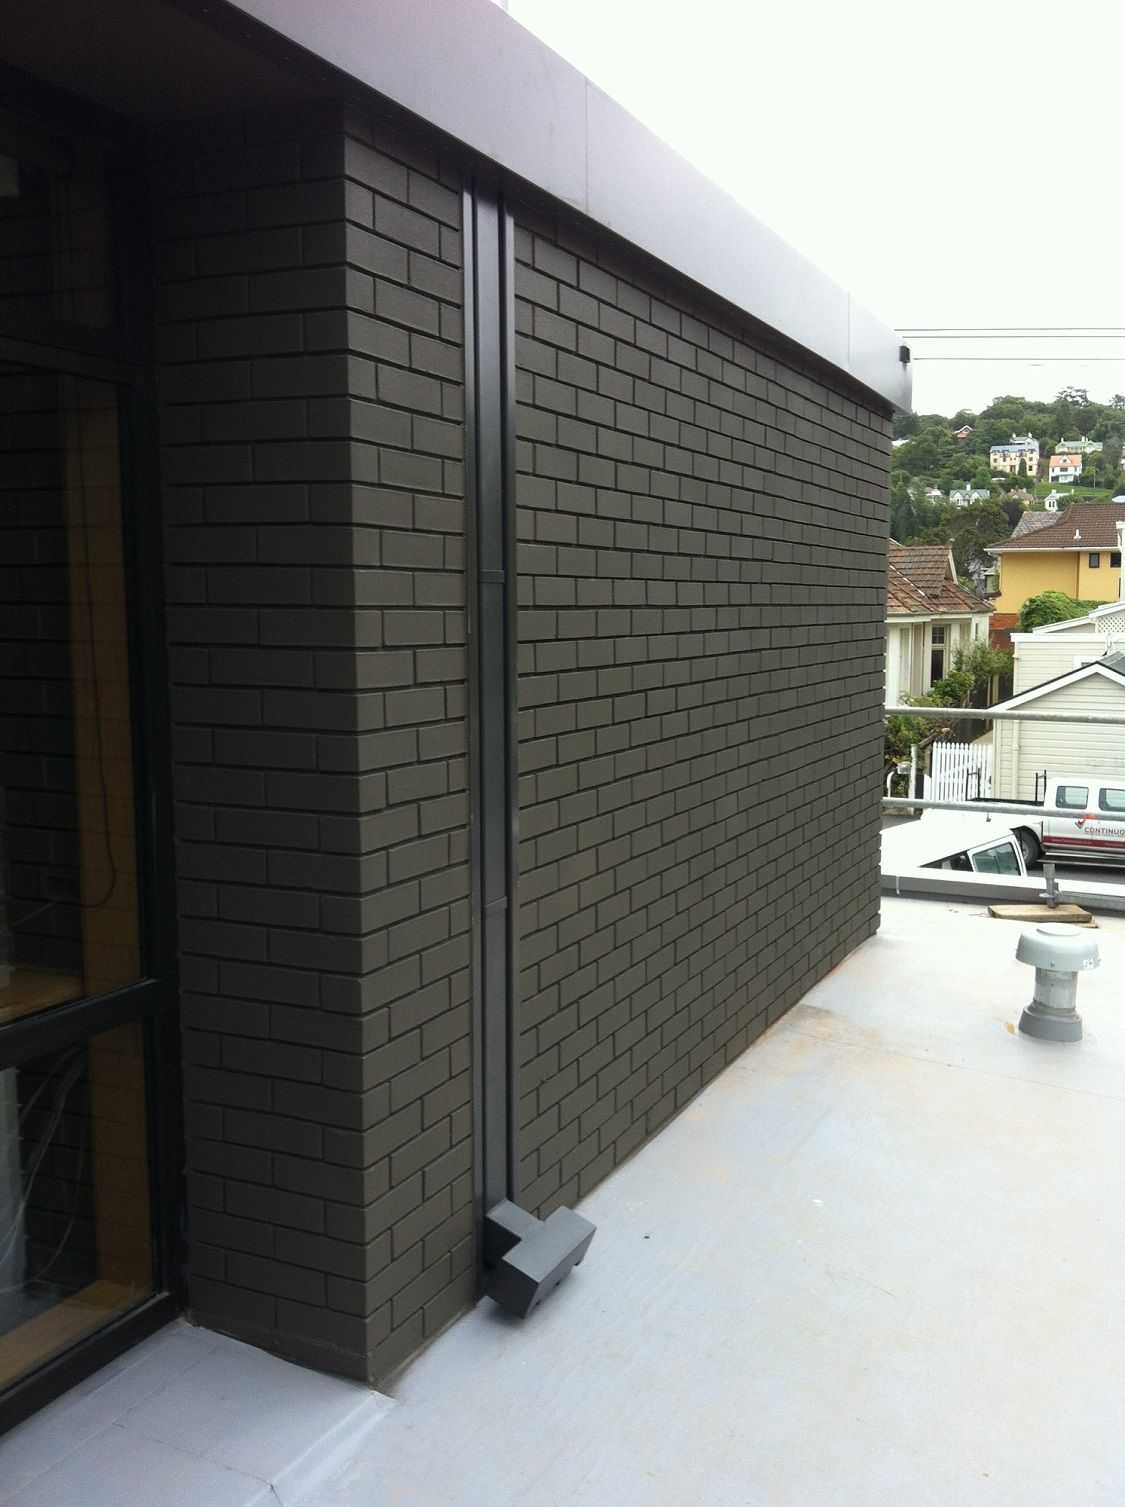 Image Result For Recessed Downpipe Detail Grangetown